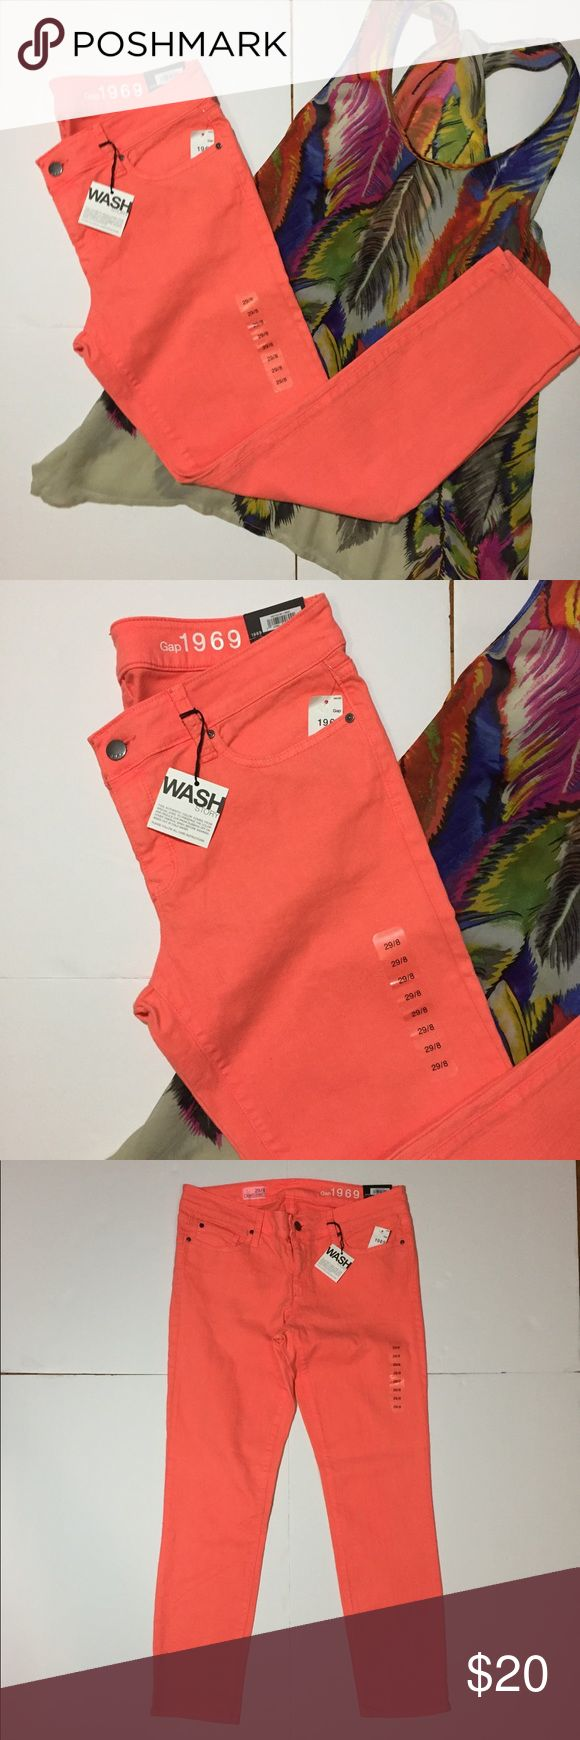 "NEW! Gap 1969 Bright Orange Skinny Jeans NWTs! New With Tags! Gap 1969 Bright Orange Skinny Jeans. Size 29, which is the same as an 8, measures flat: 16"" across top, 8"" rise, 27"" inseam. Low rise stretch per the tags. Original $70. 530/100/060917 GAP Jeans Skinny"